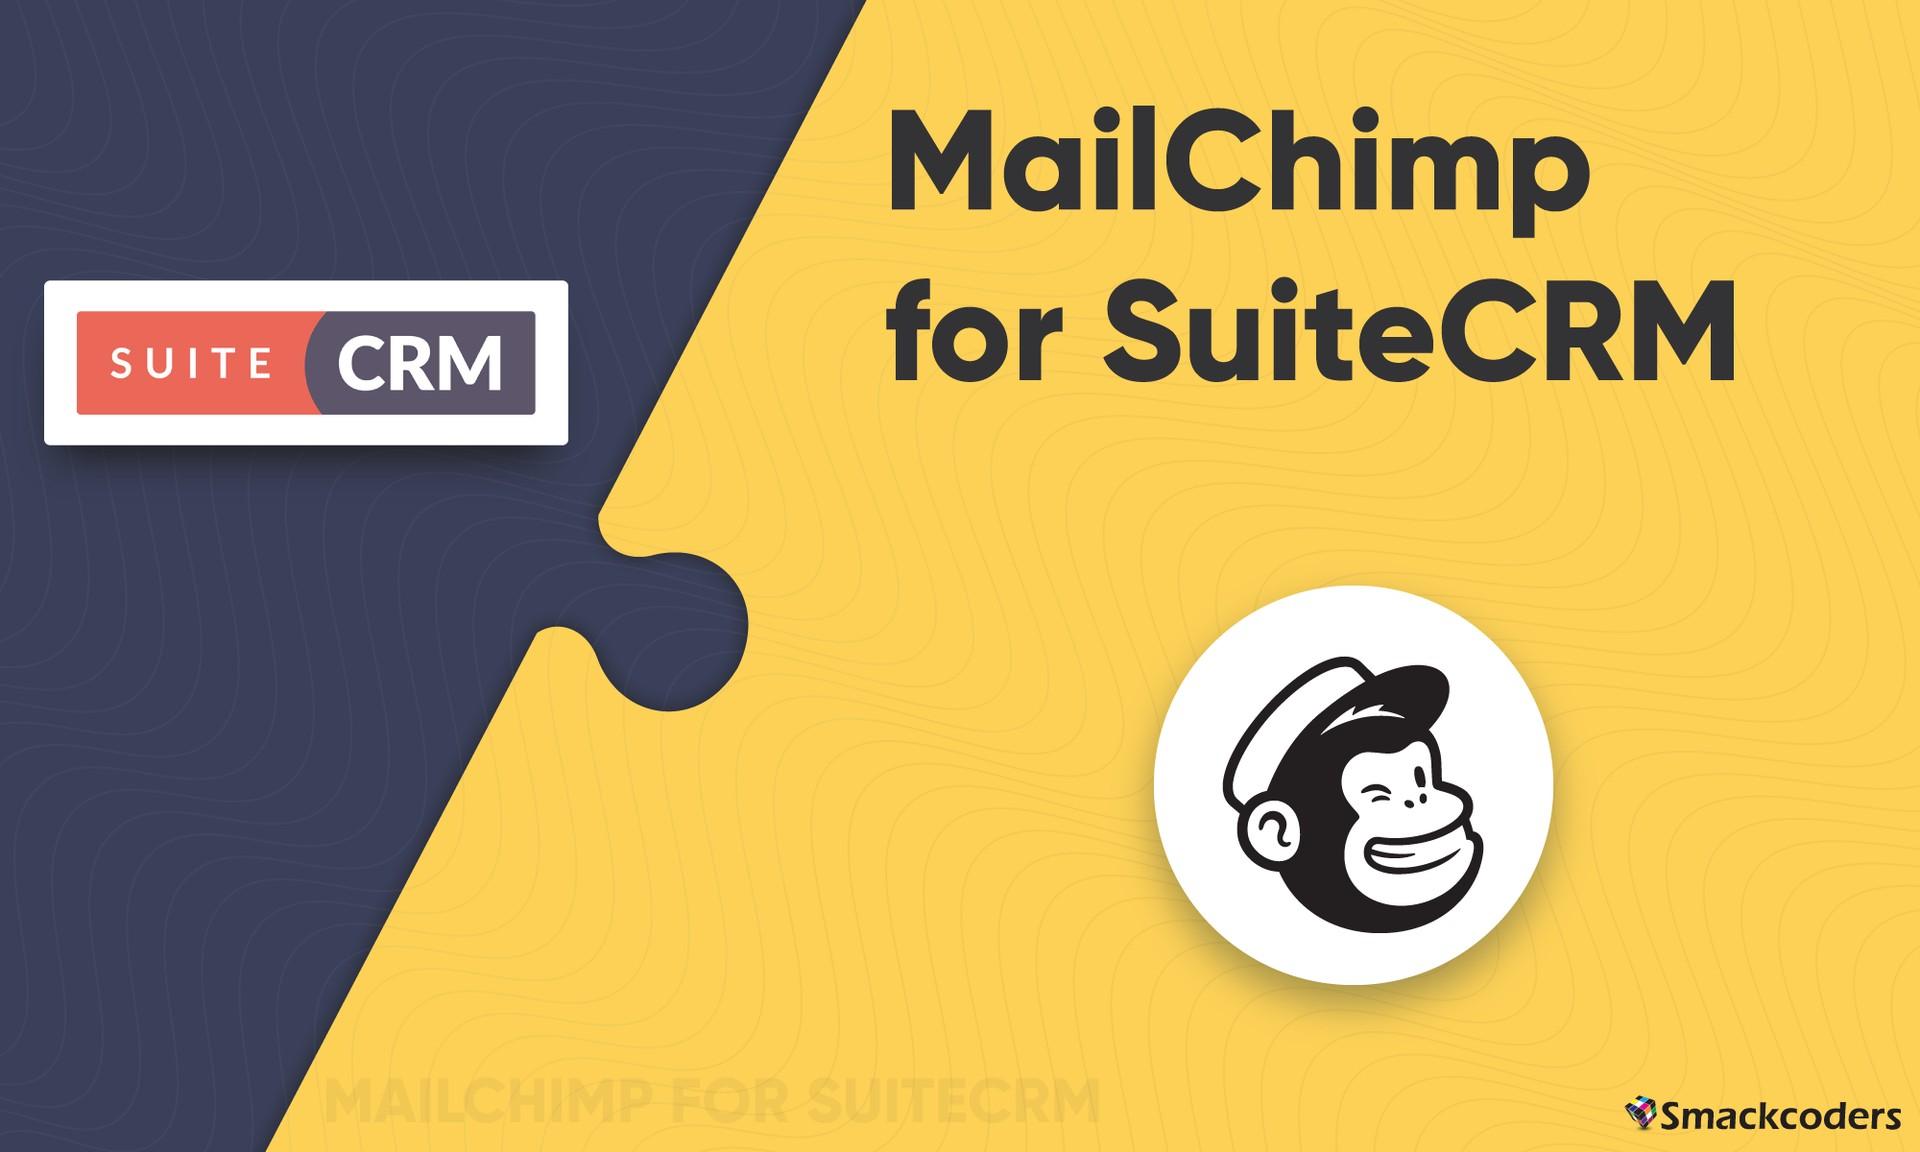 SuiteCRM-MailChimp-Release-blog-18-Apr